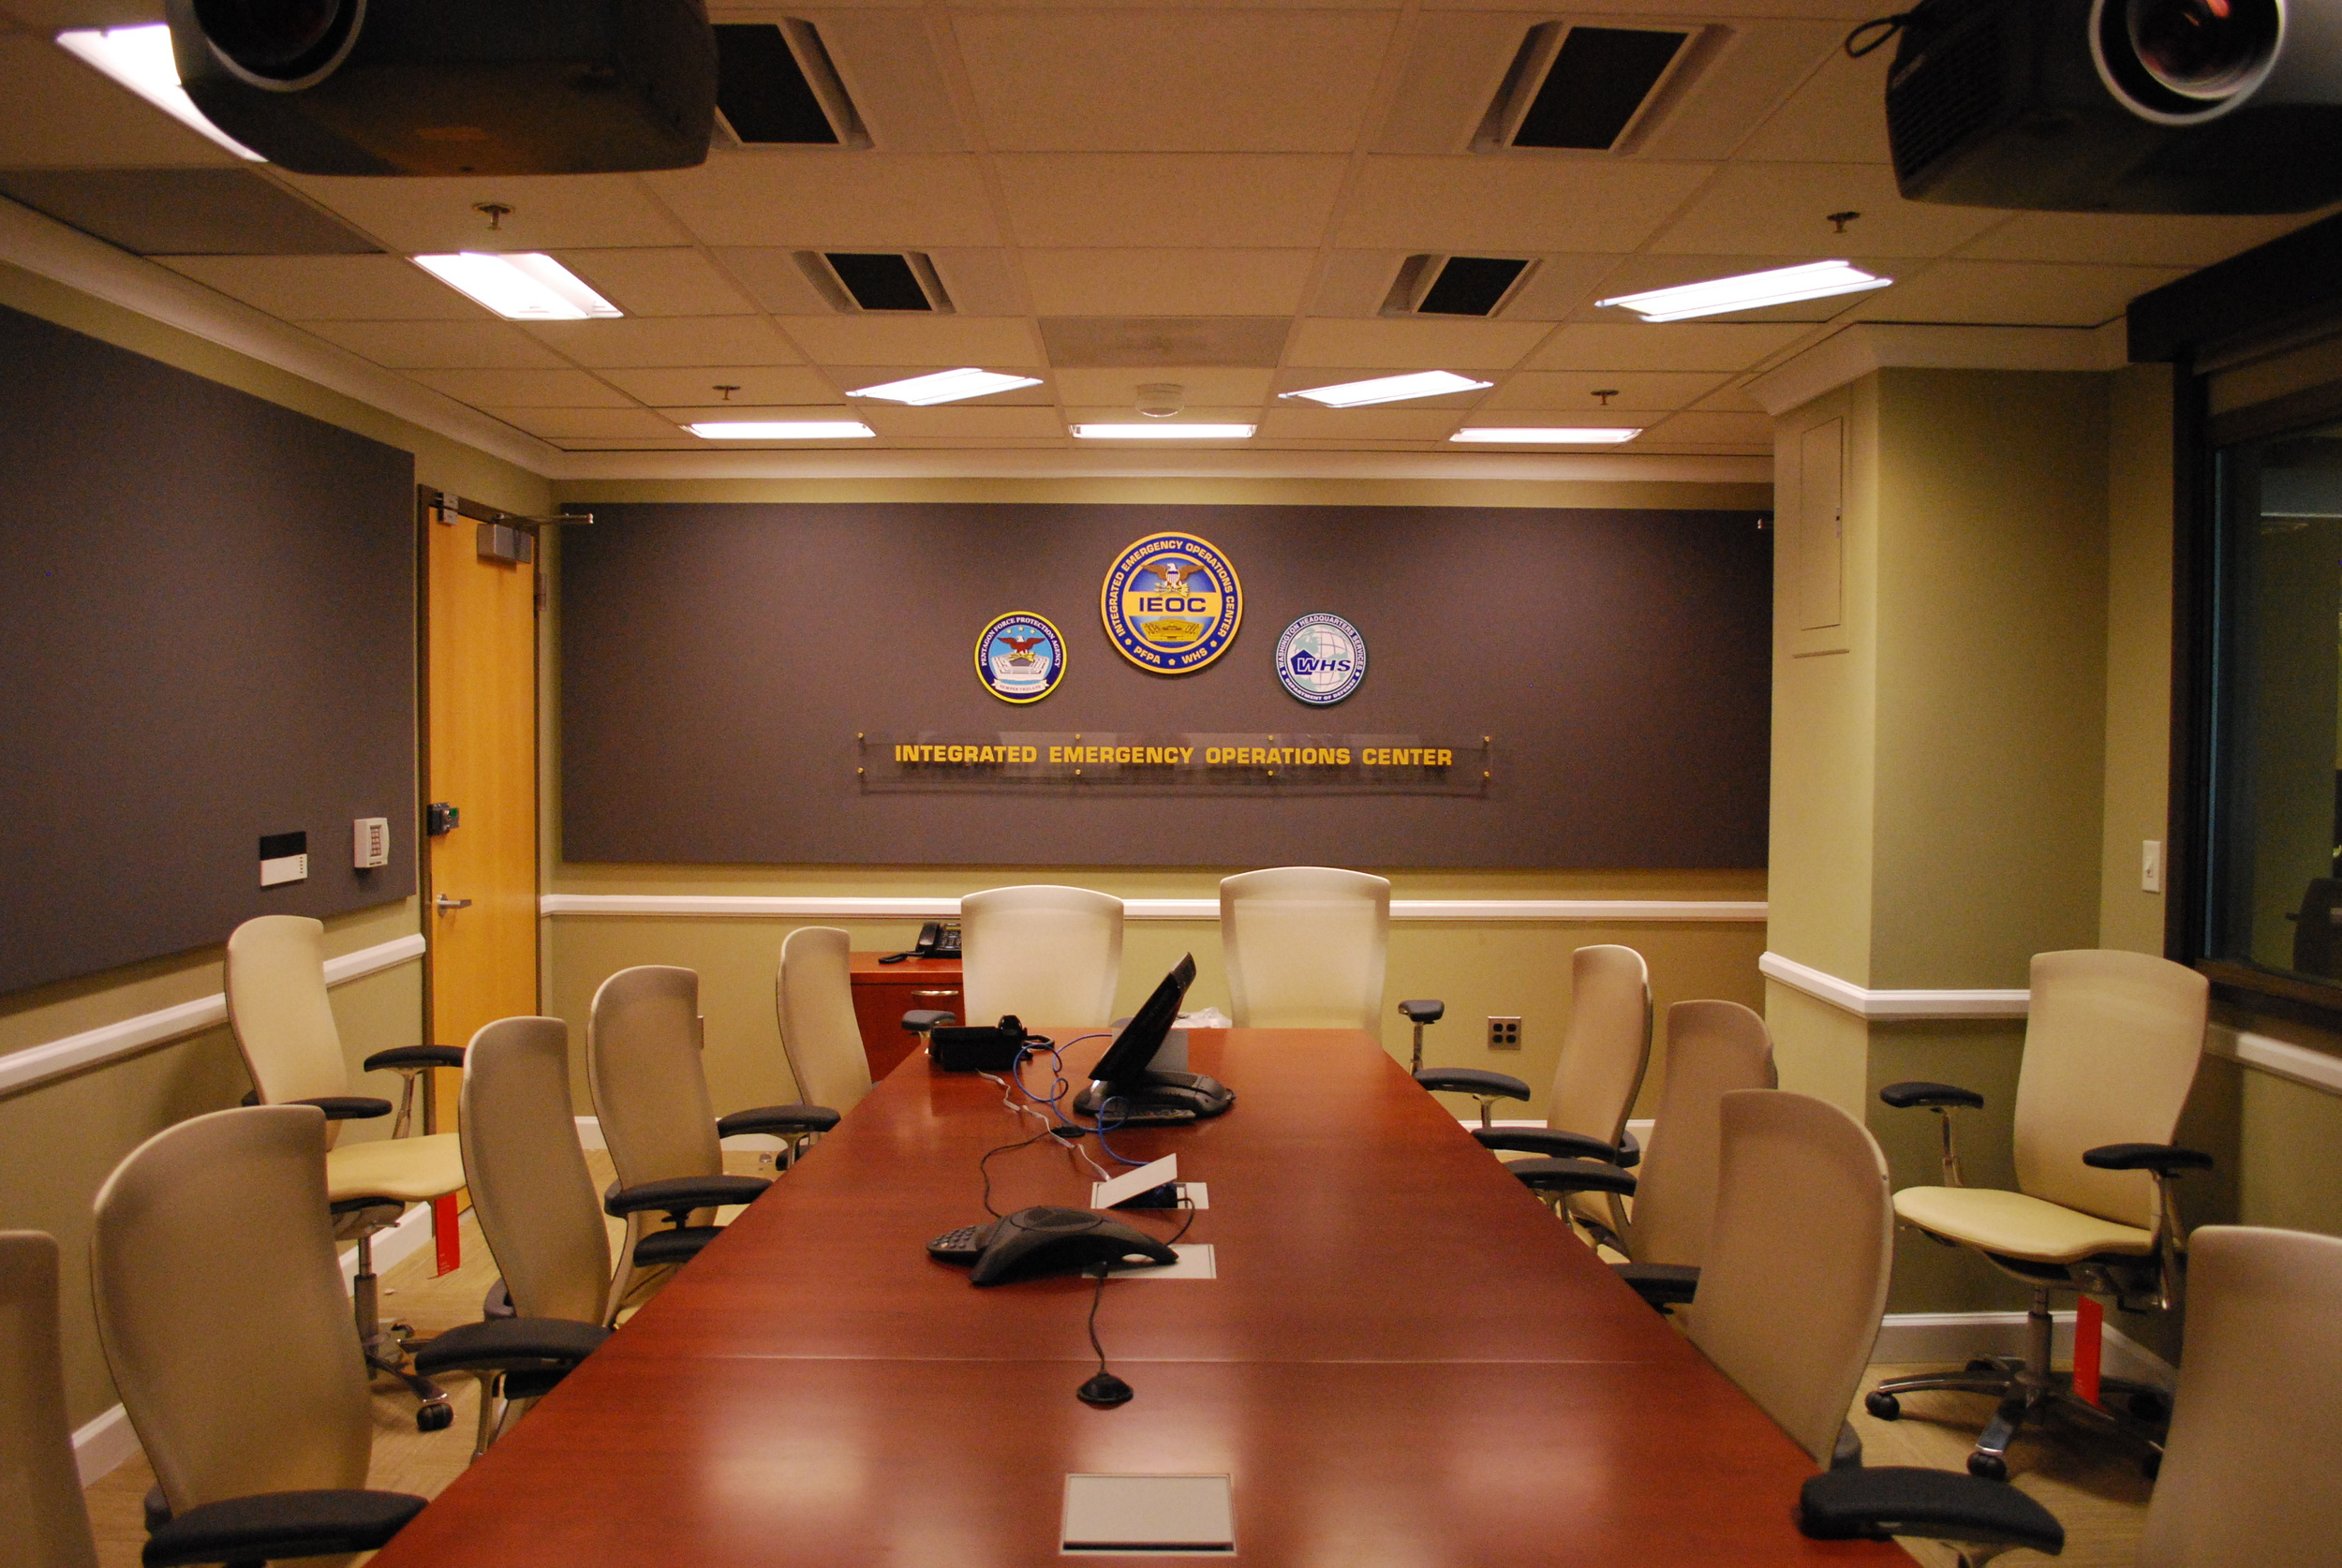 Integrated Emergency Operations Center (IEOC)